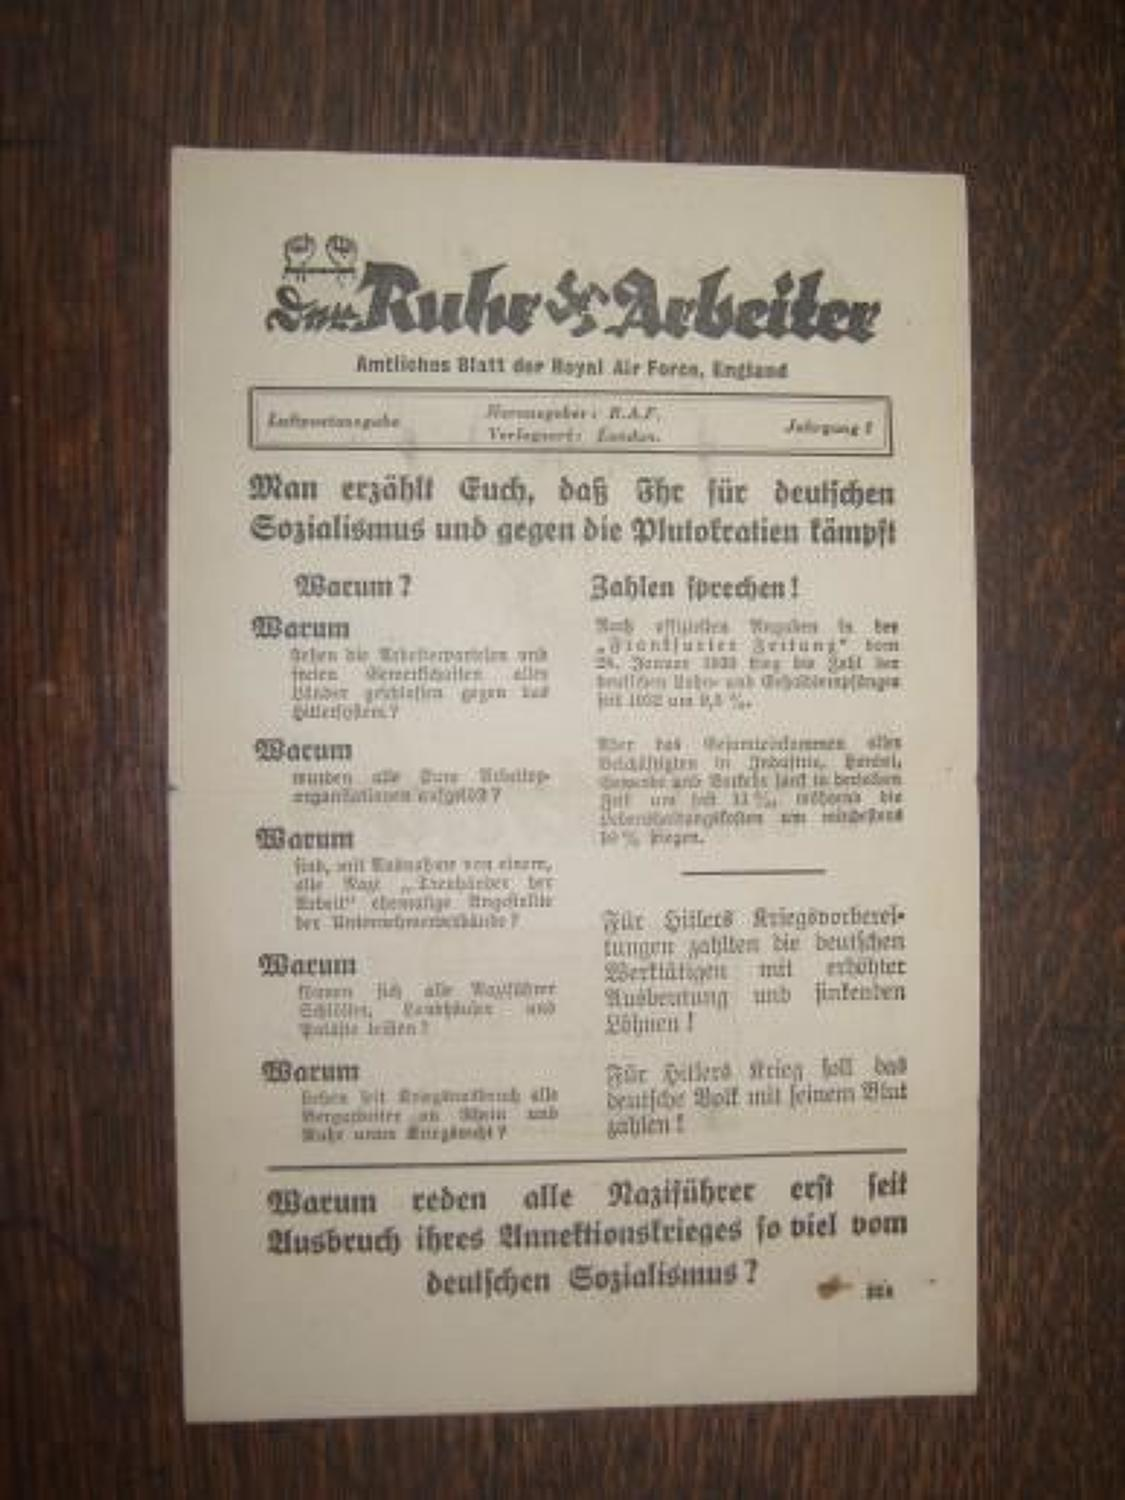 WW2 RAF Propaganda leaflet dropped on Germany